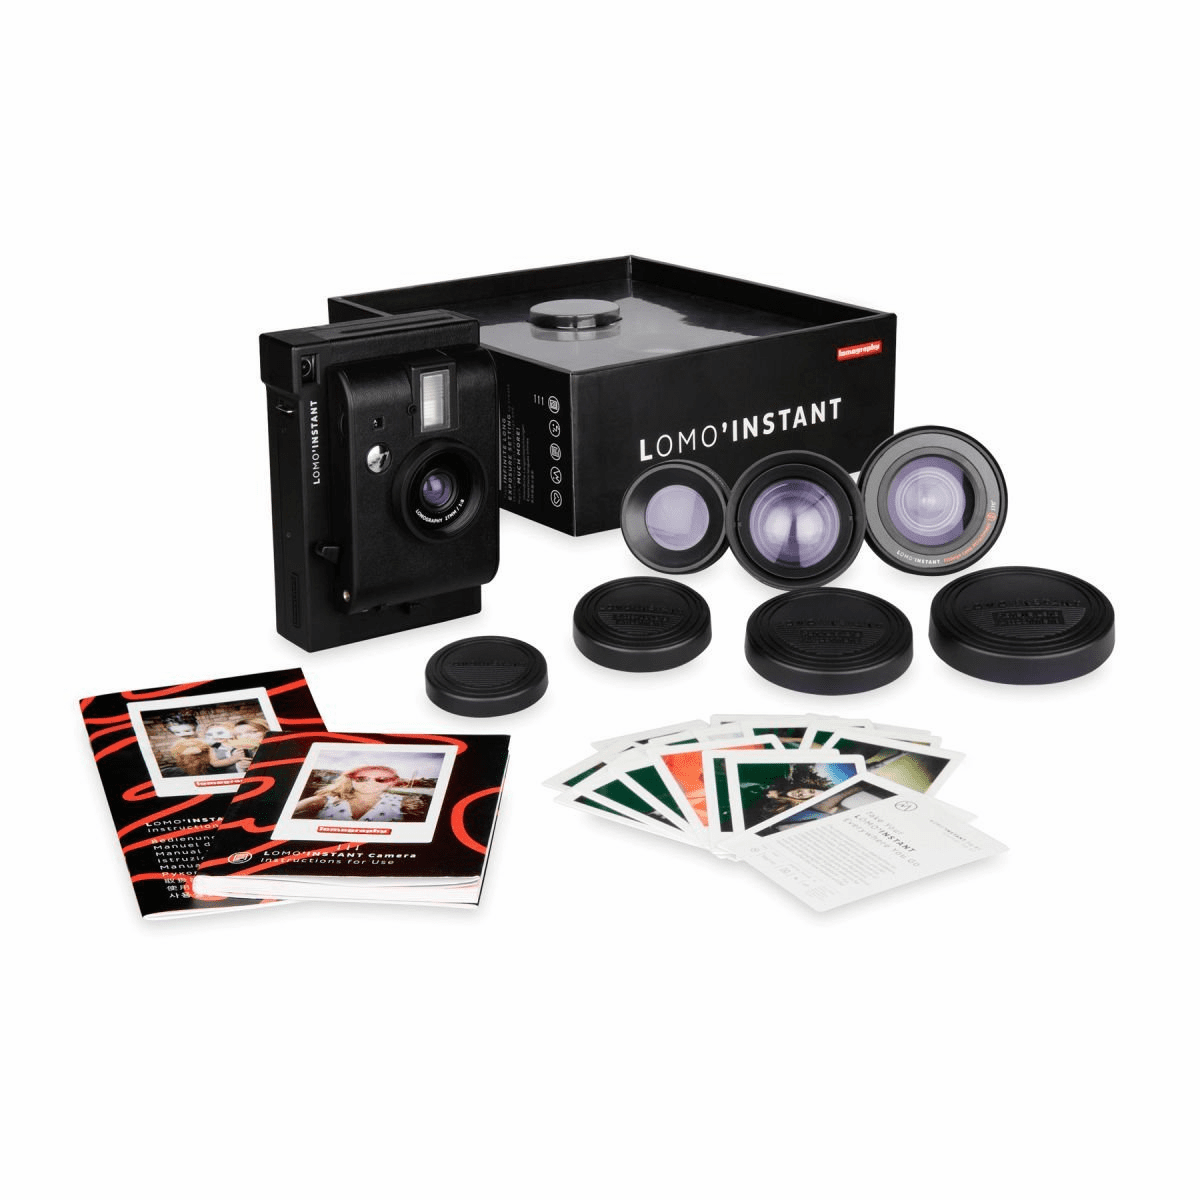 Lomography Lomo Instant Plus Three Lenses Camera Black